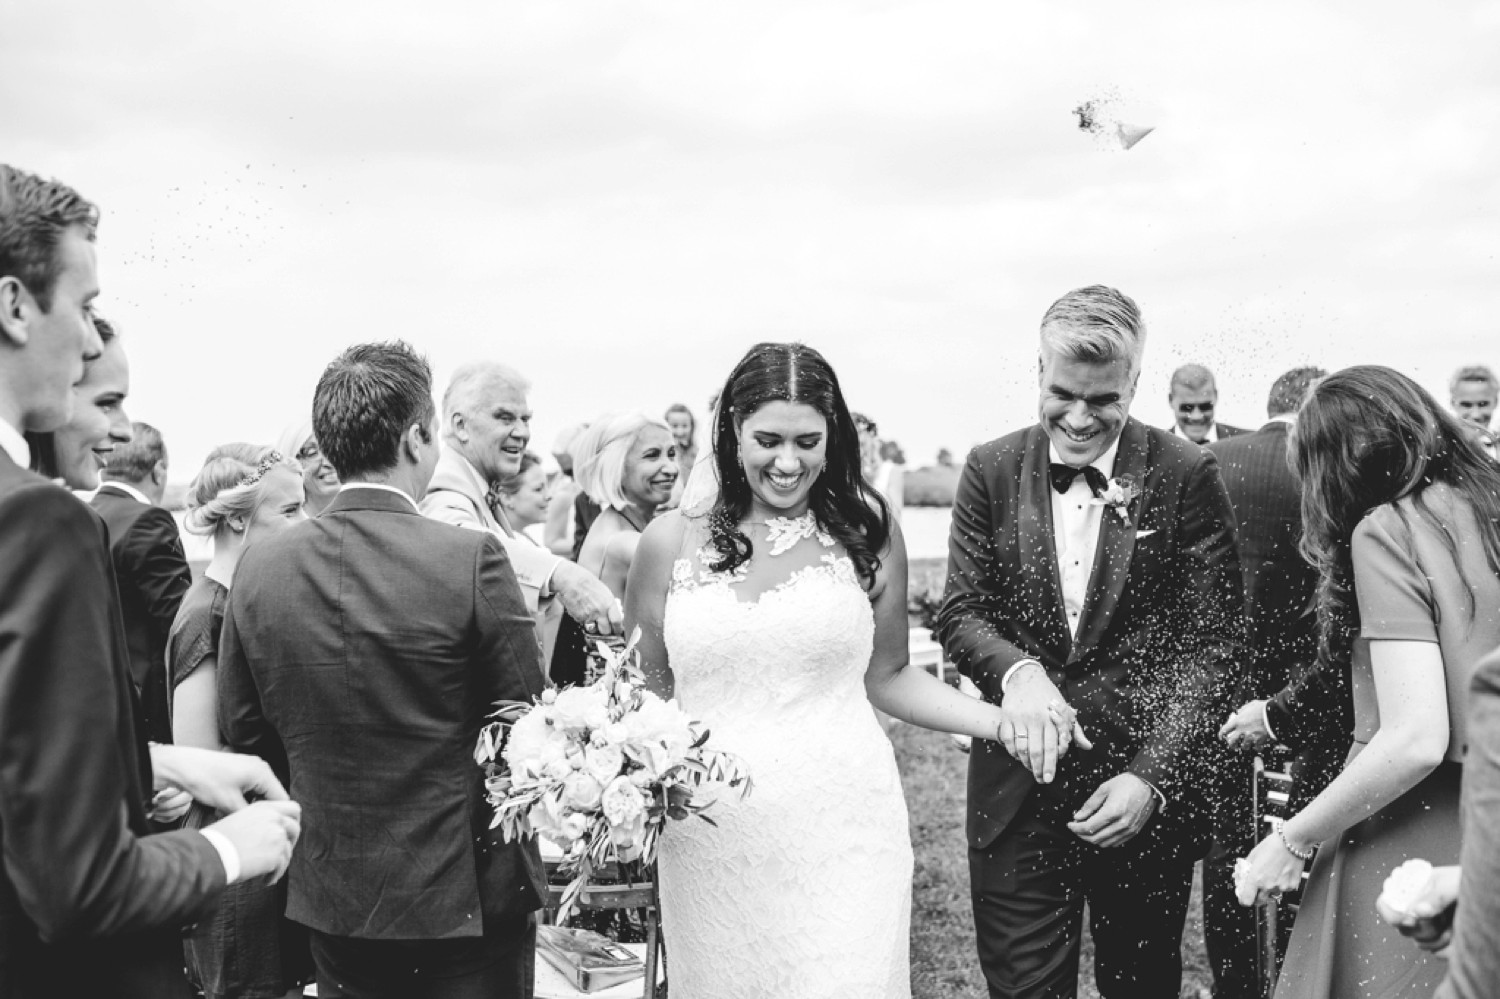 wedding-thomas-kavita-by-nienke-van-denderen-fotografie-63